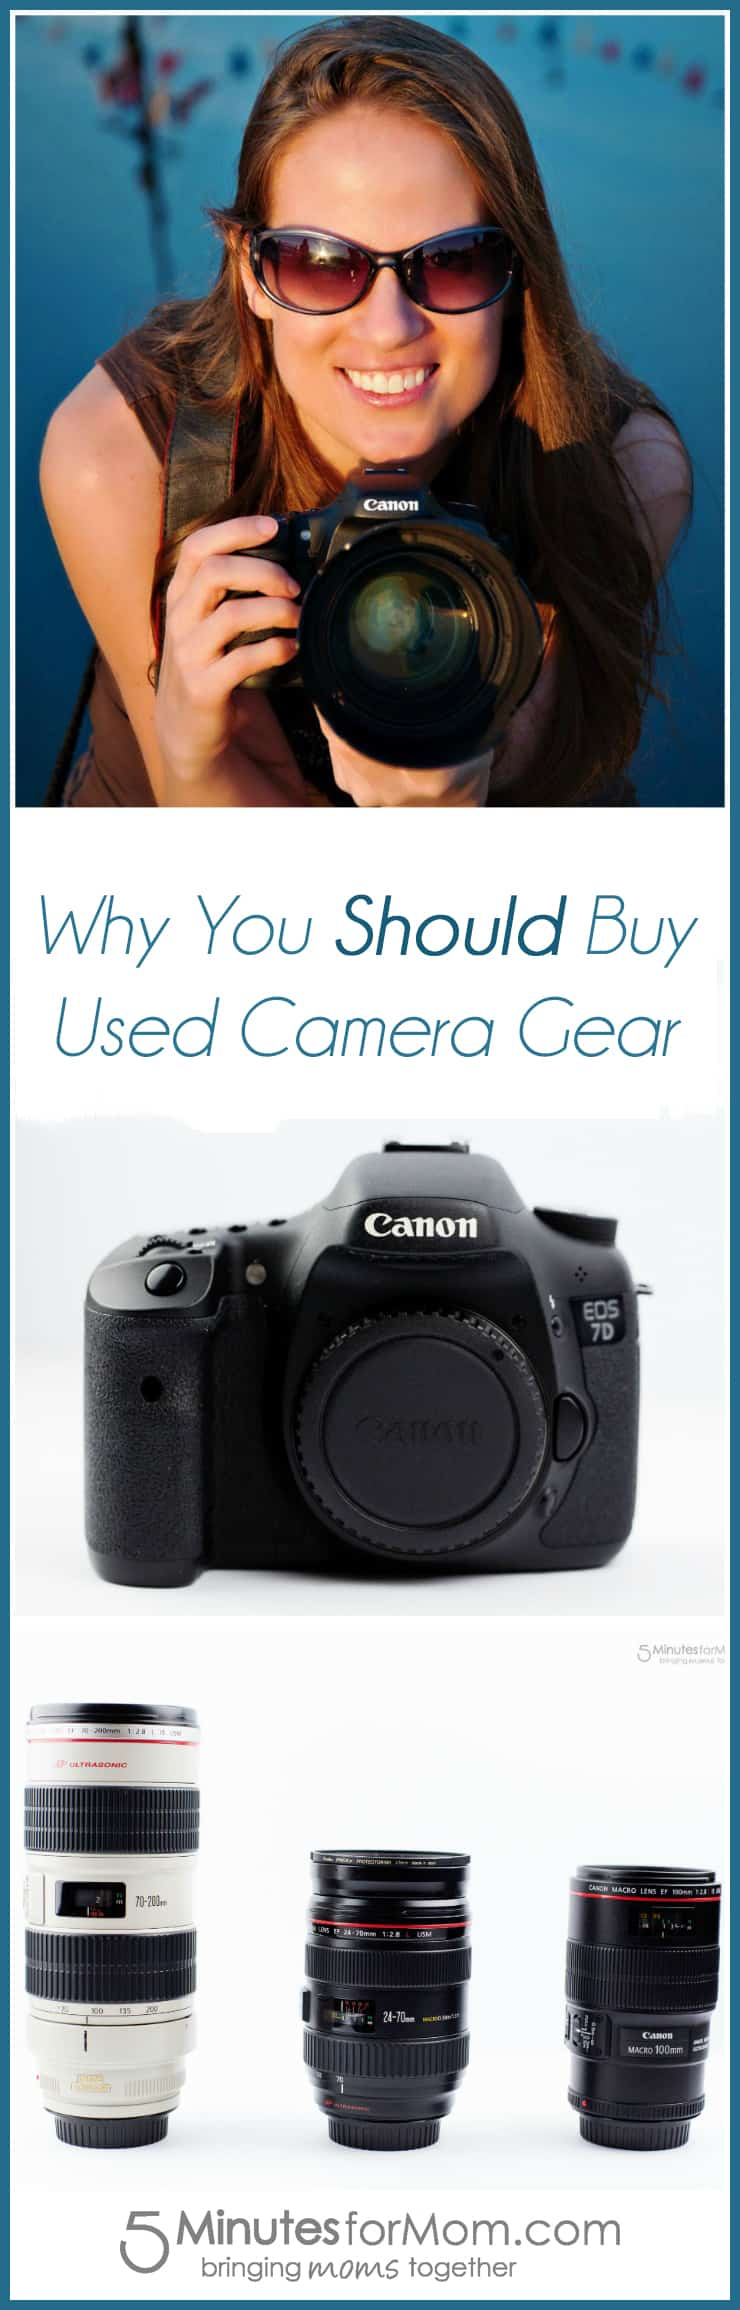 Why You Should Buy Used Camera Gear